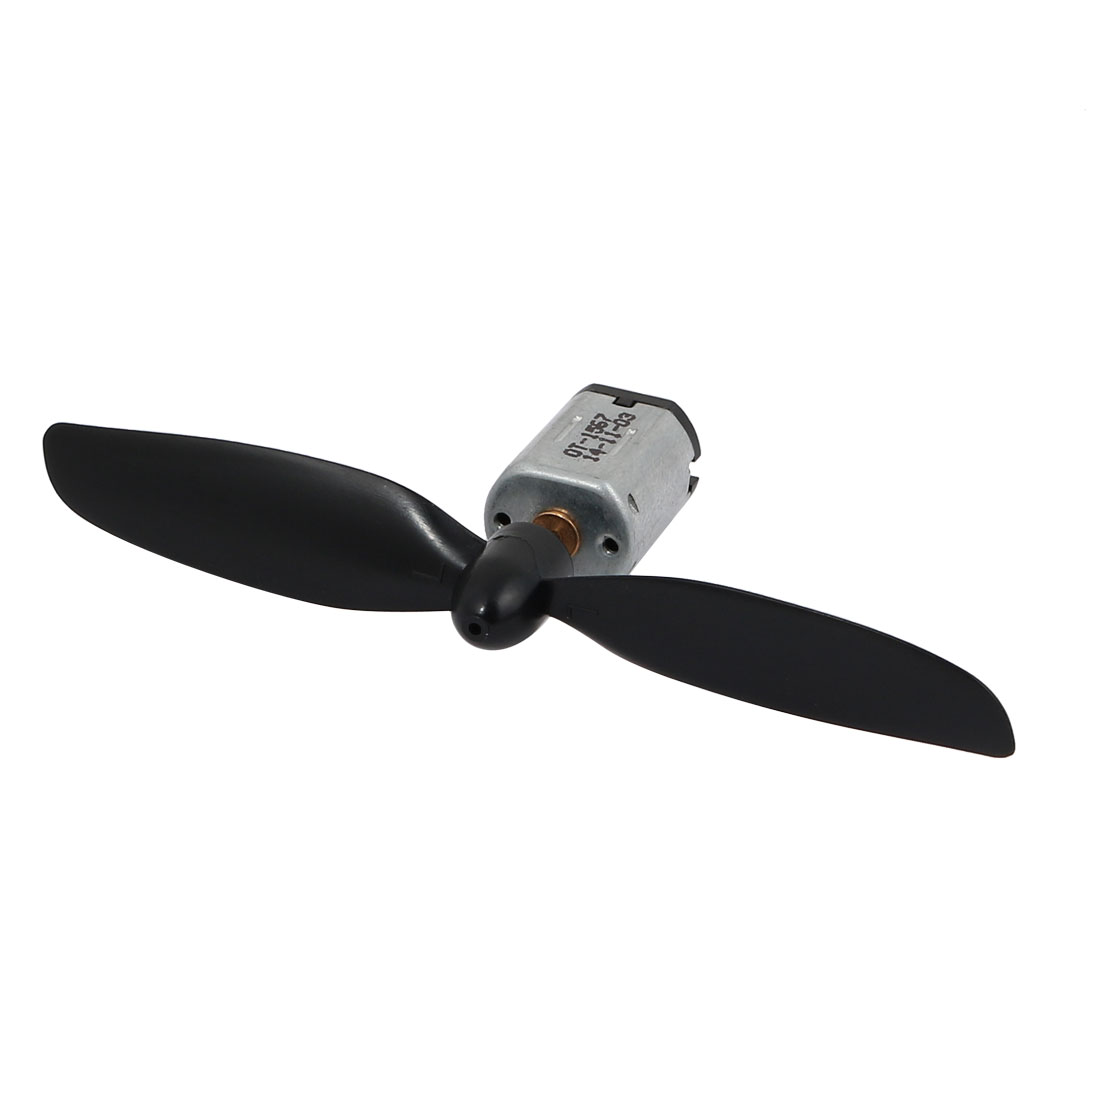 DC1.5V 9300RPM N20 Strong Magnetic Motor w Helicopter CCW Propeller for RC Model